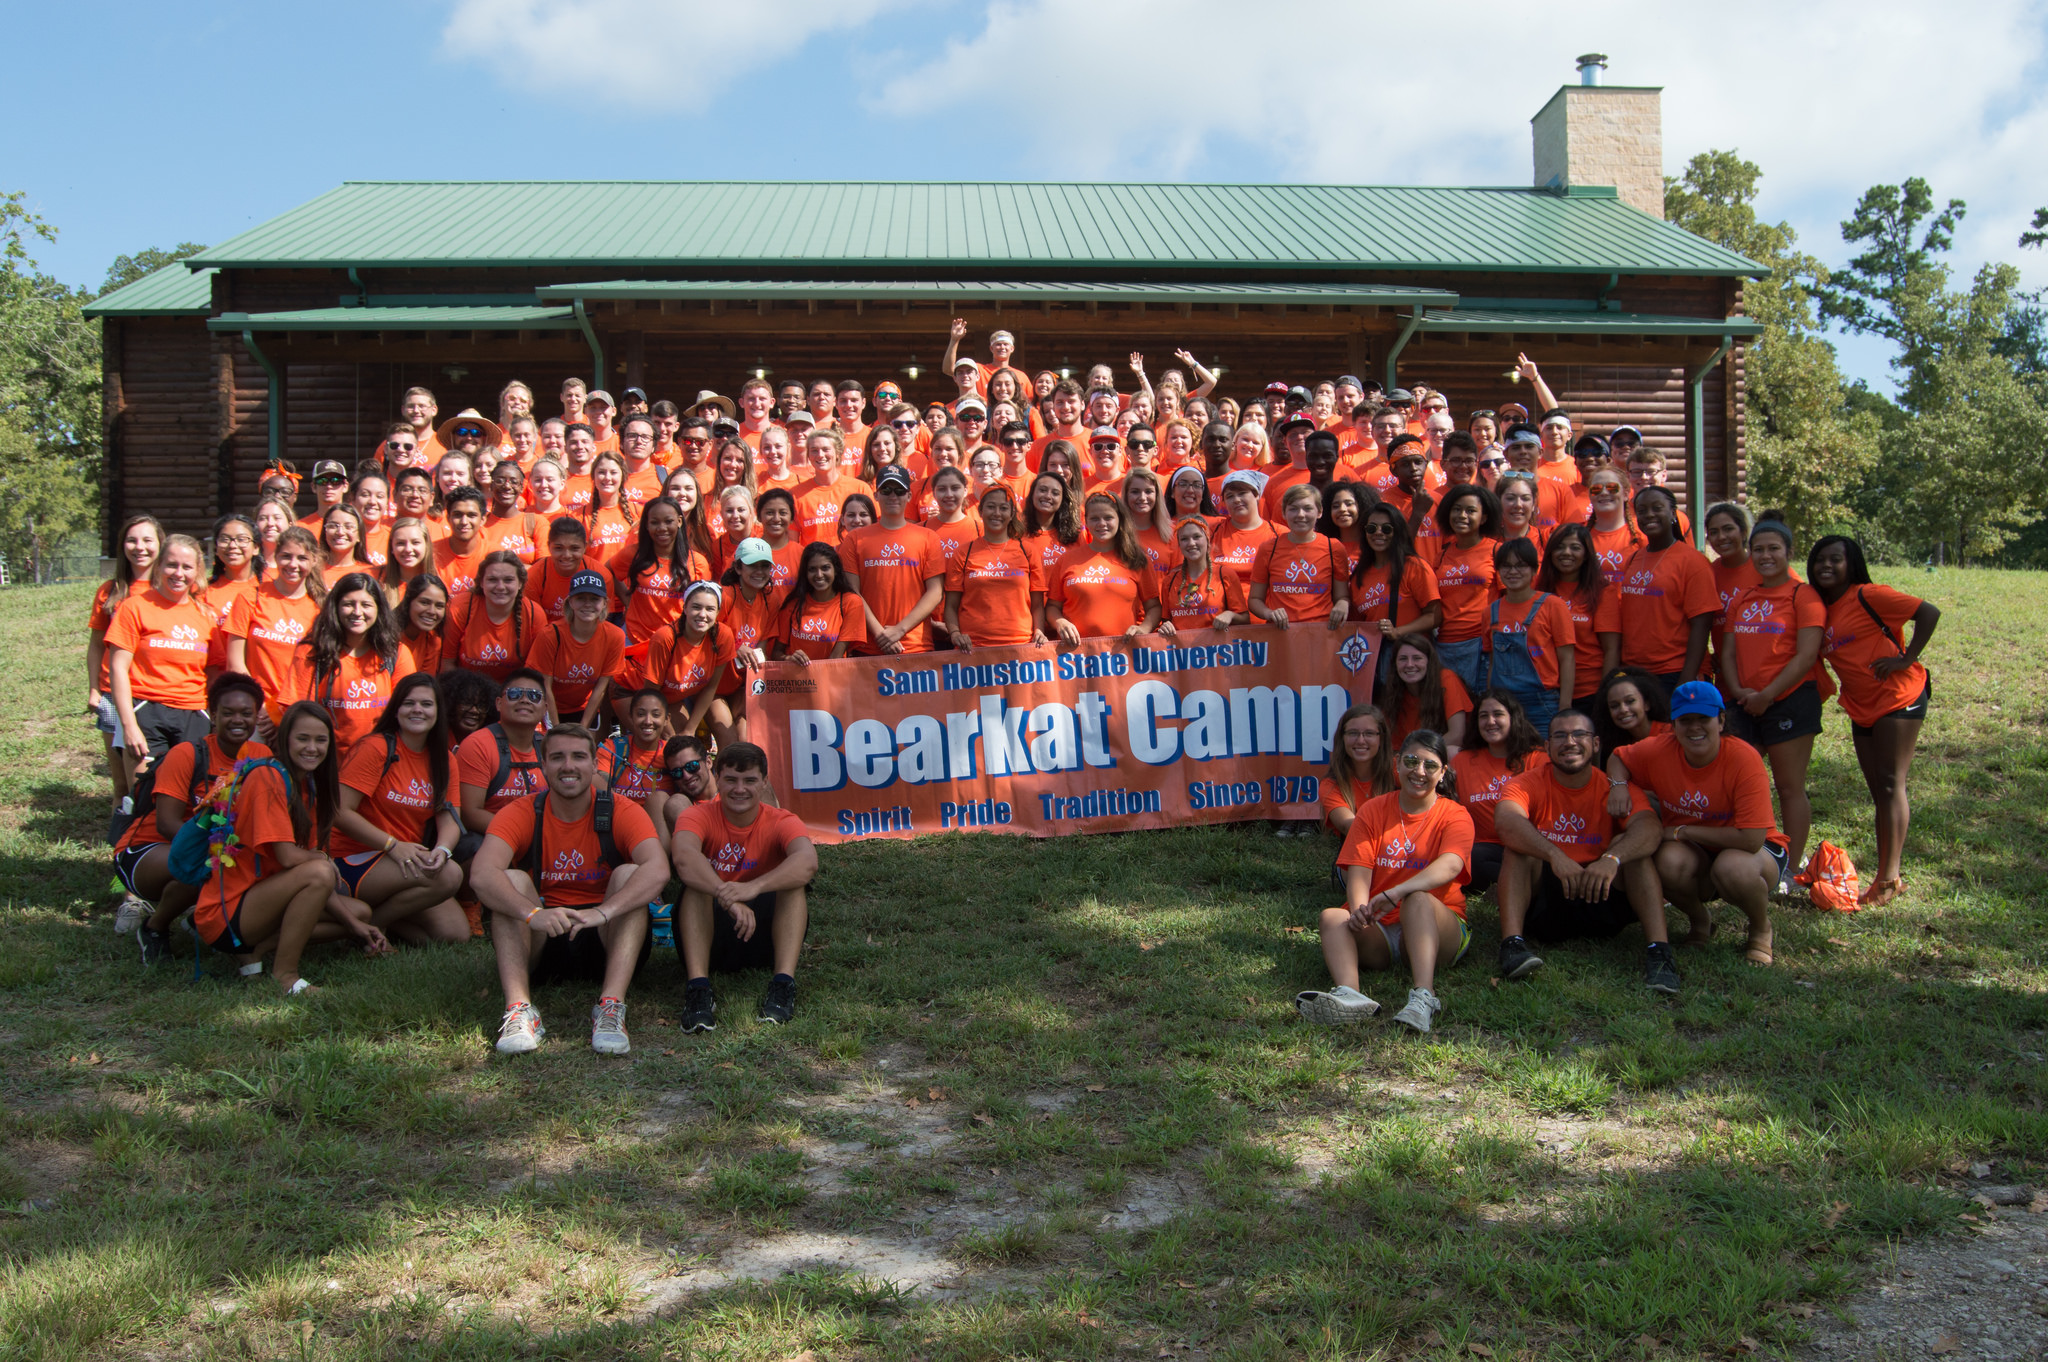 Large group of students at Bearkat Camp.